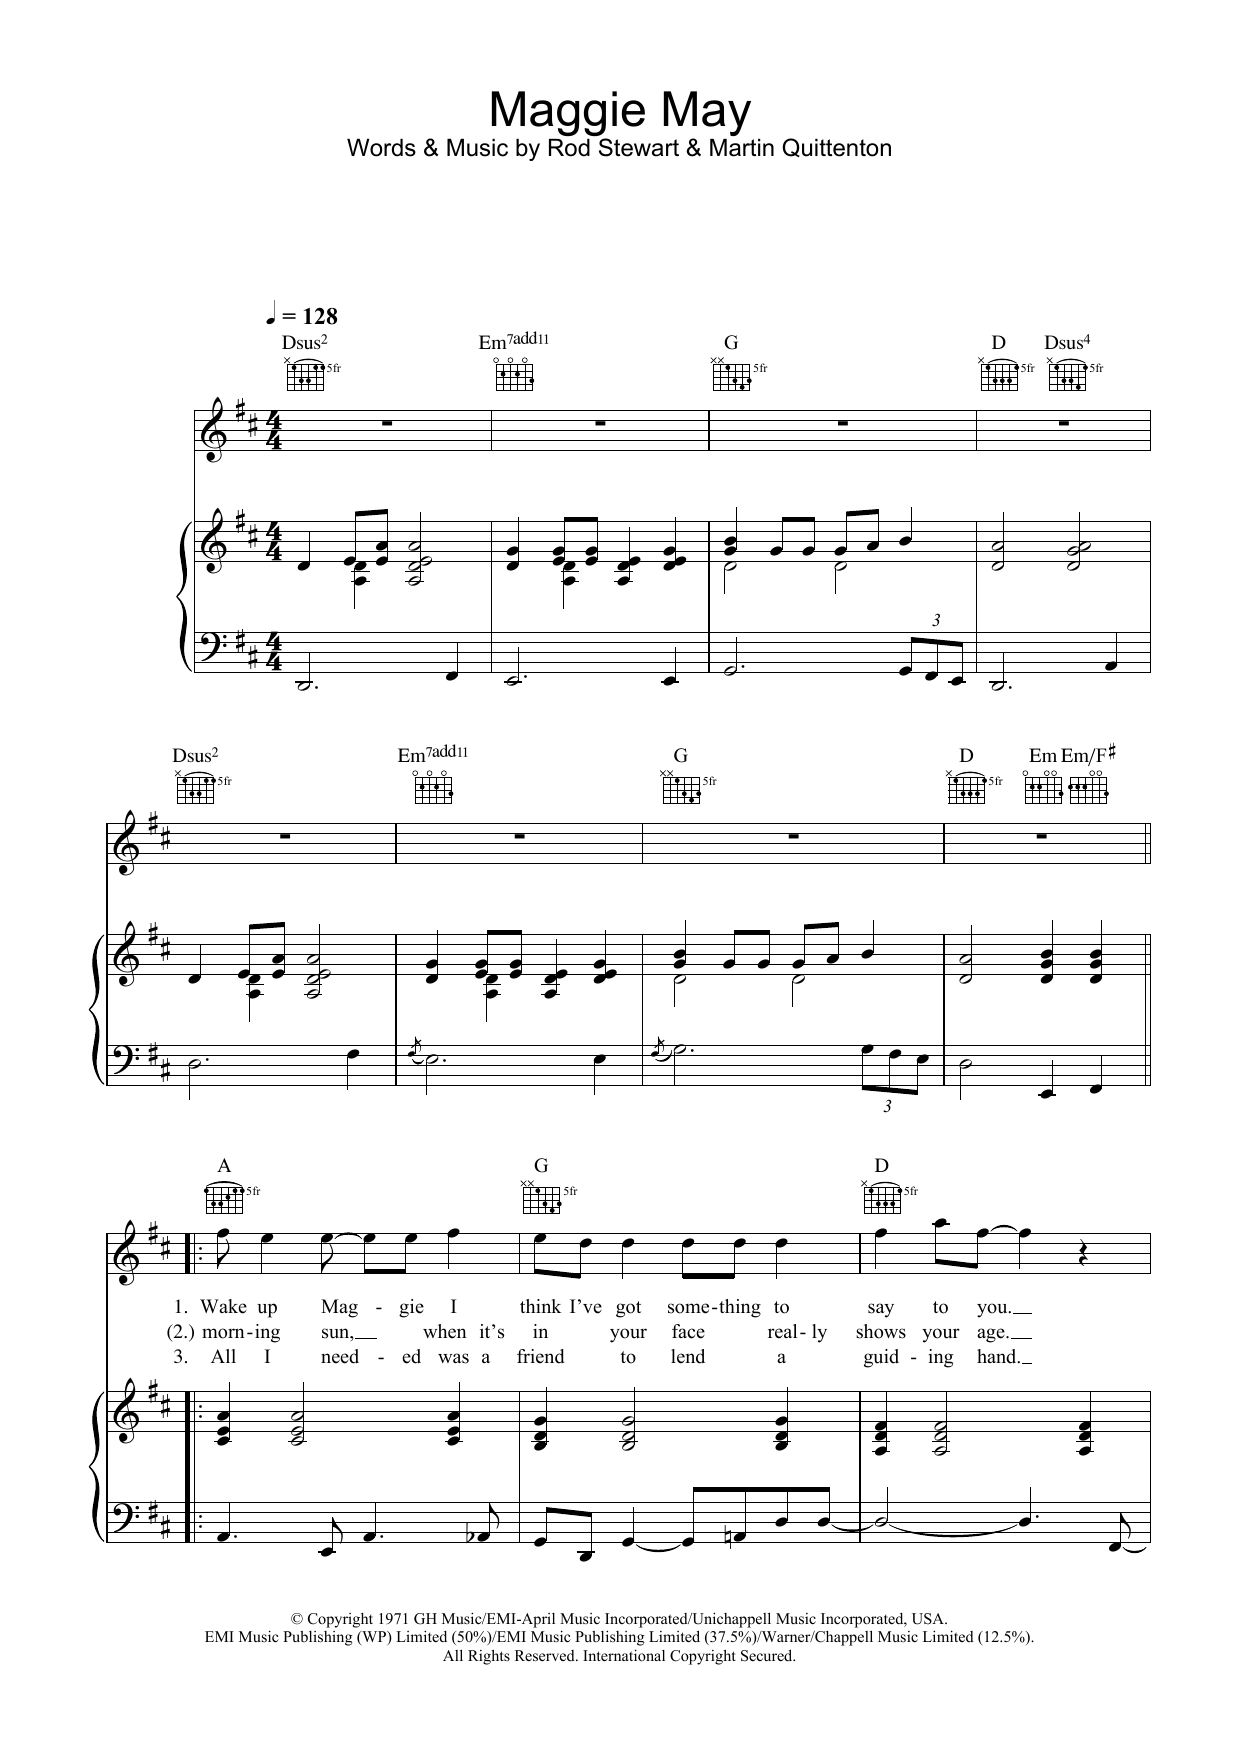 Maggie May sheet music for voice, piano or guitar by Martin Quittenton